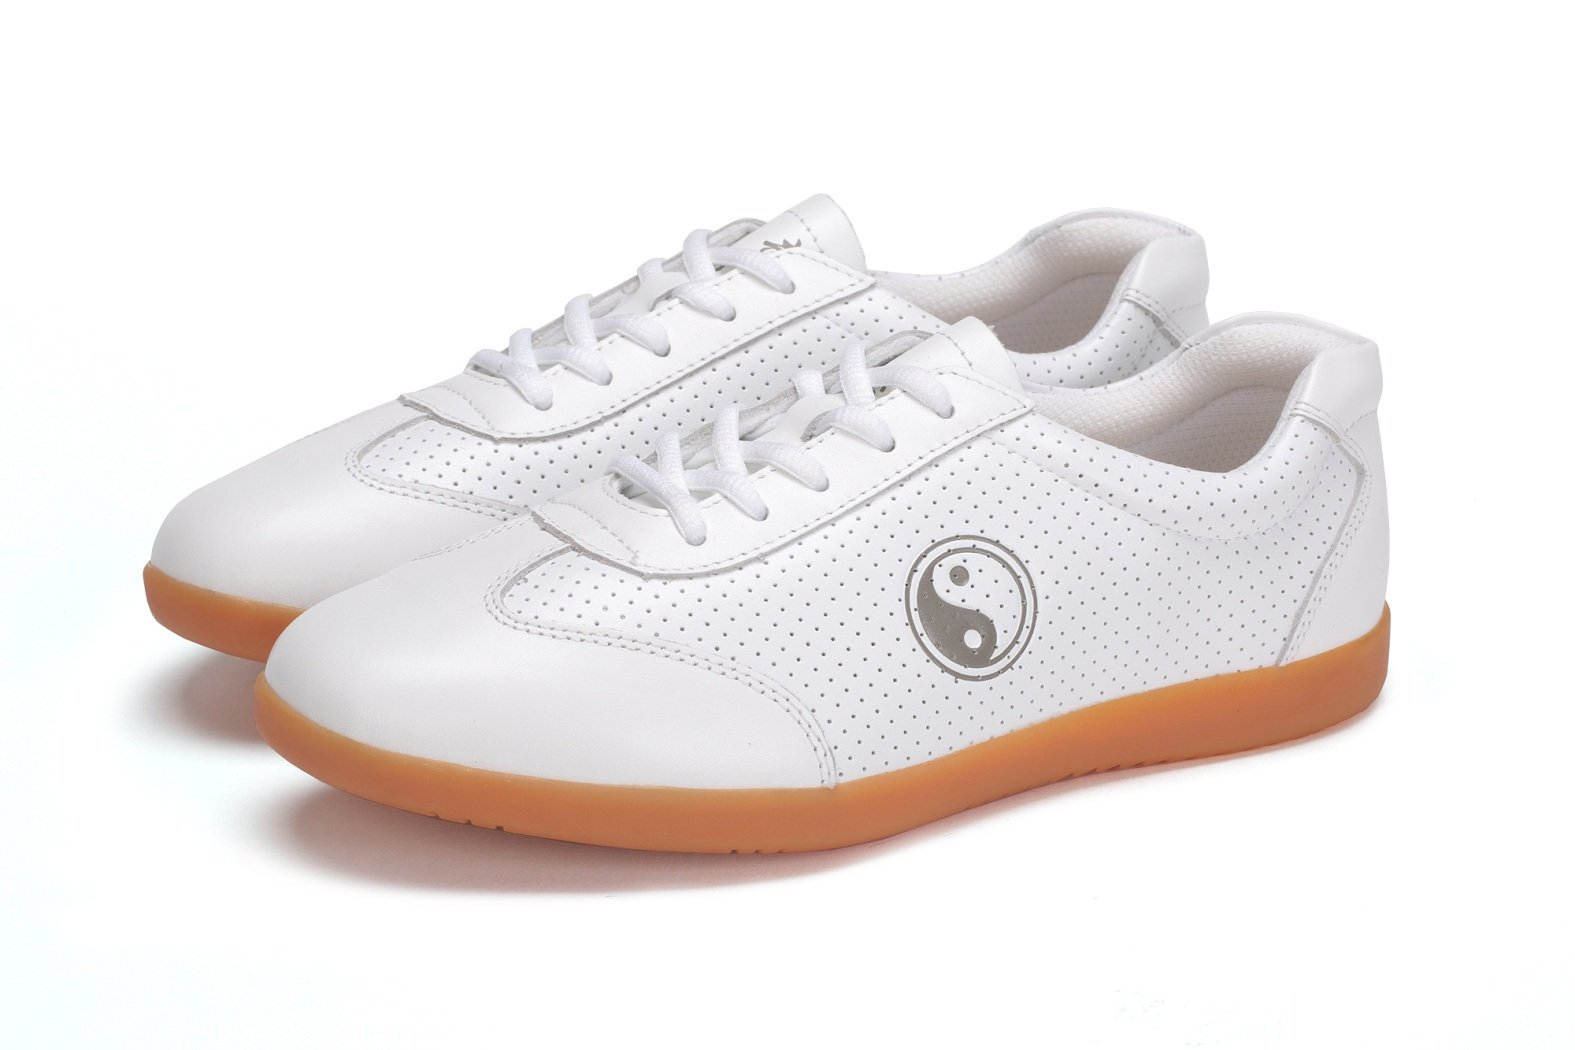 ICNBUYS Women's Breathable Leather Kung Fu Tai Chi Shoes for Summer White Euro 35 US 6 by ICNBUYS